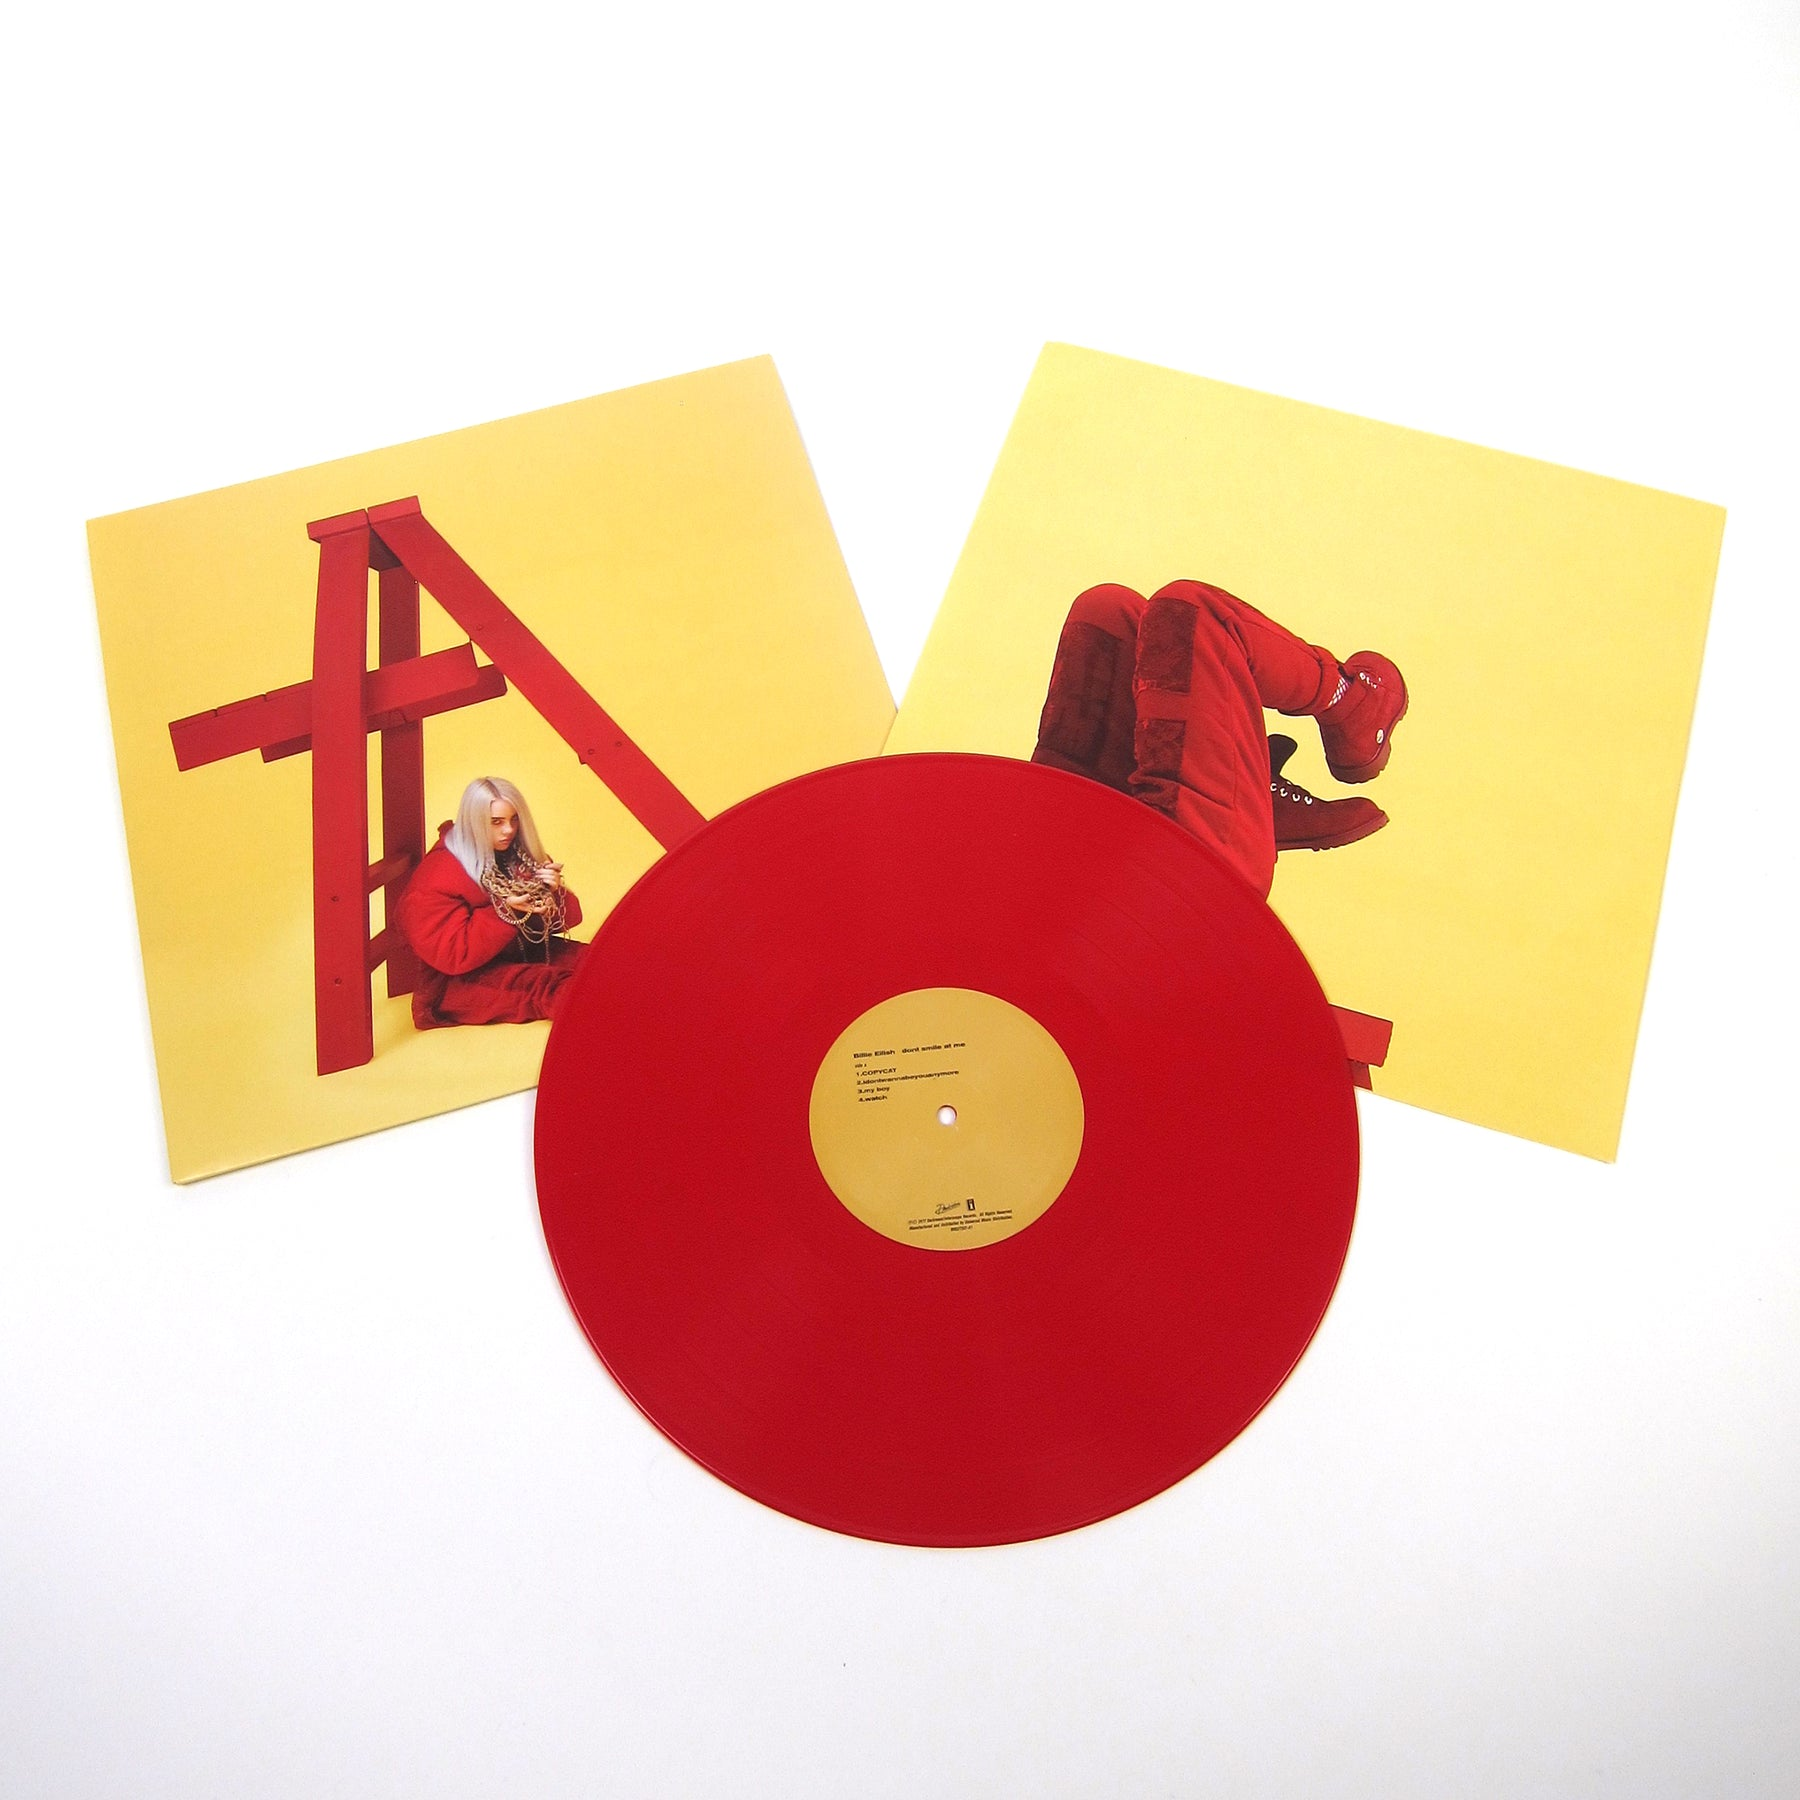 158151d5 Billie Eilish: dont smile at me (Opaque Red Vinyl) Vinyl LP ...